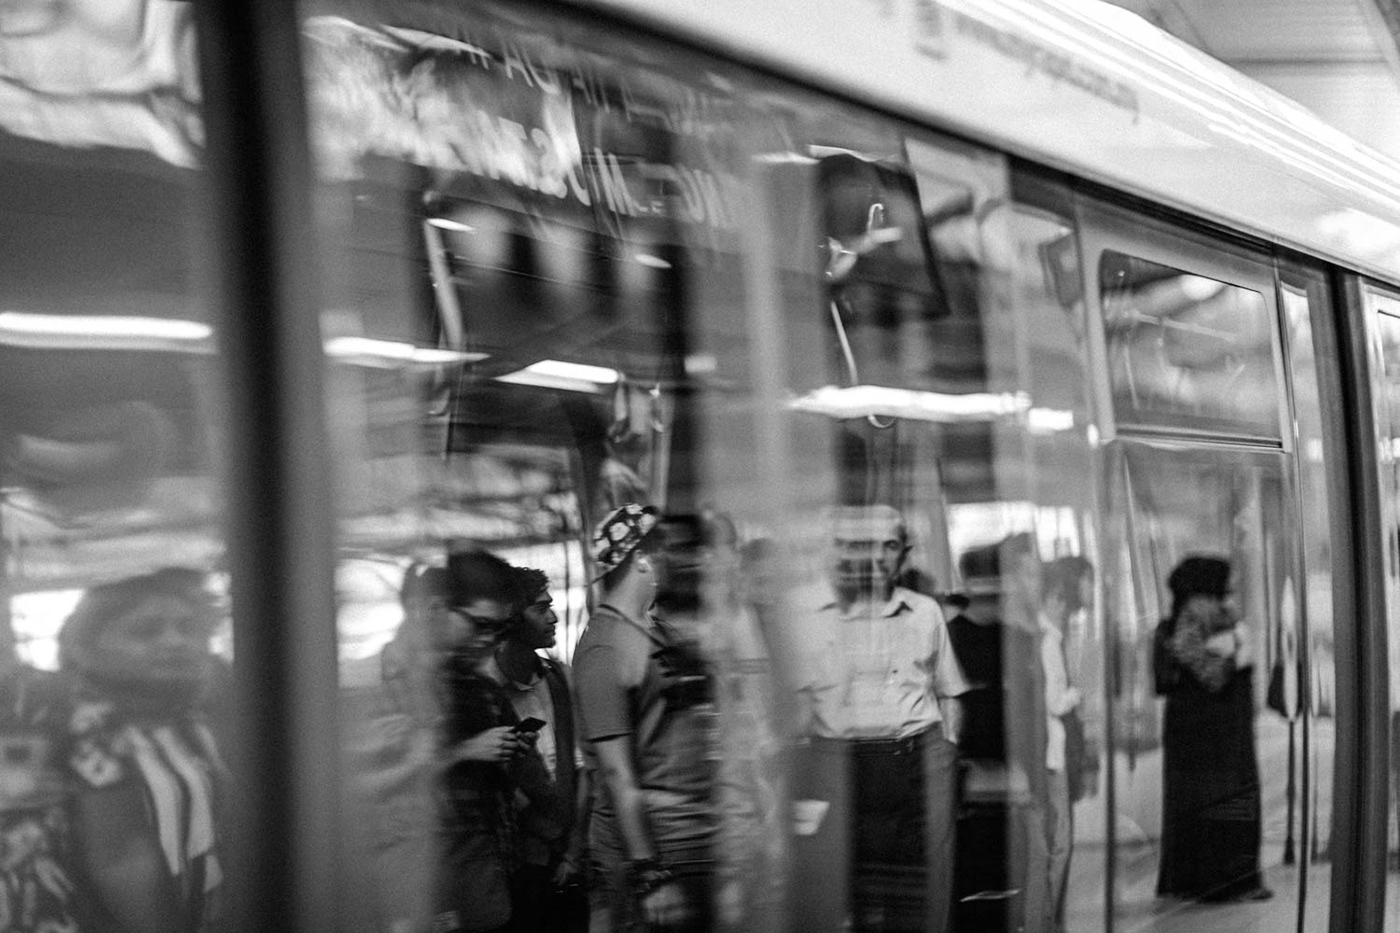 People's images reflected in a train on a platform in Kuala Lumpur, Malaysia.